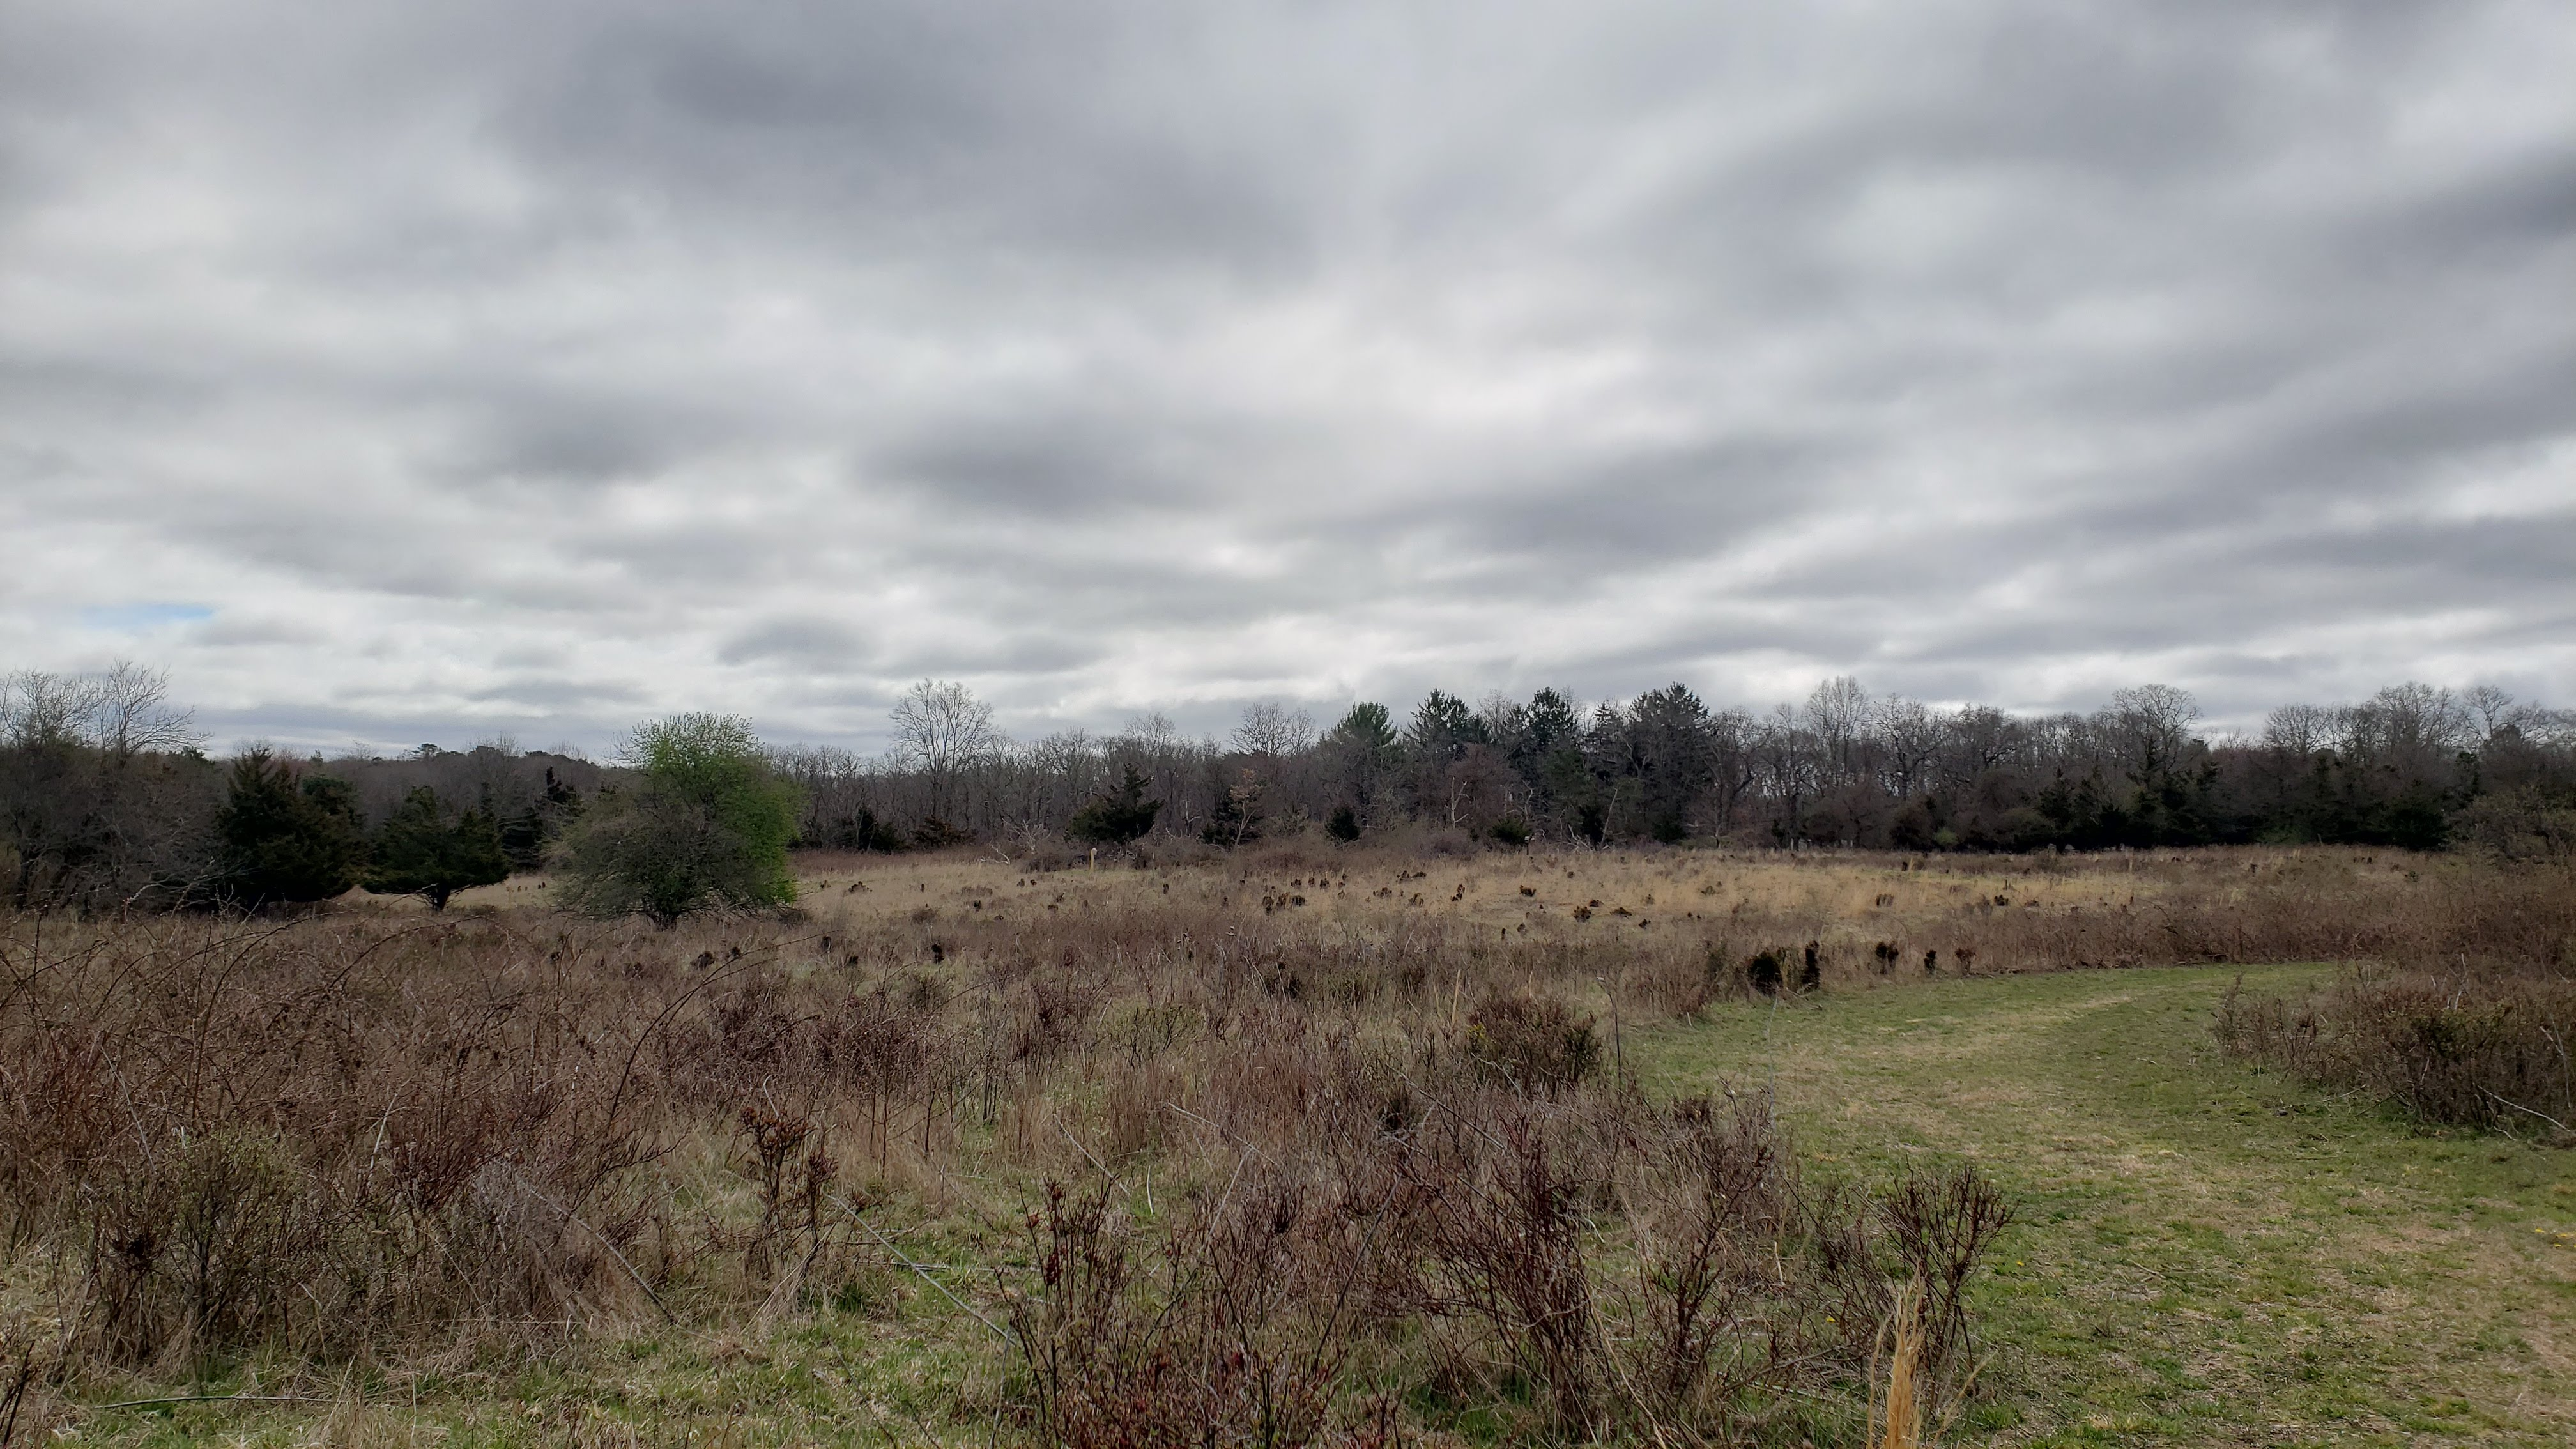 grasslands at ridge conservation area in long island pine barrens